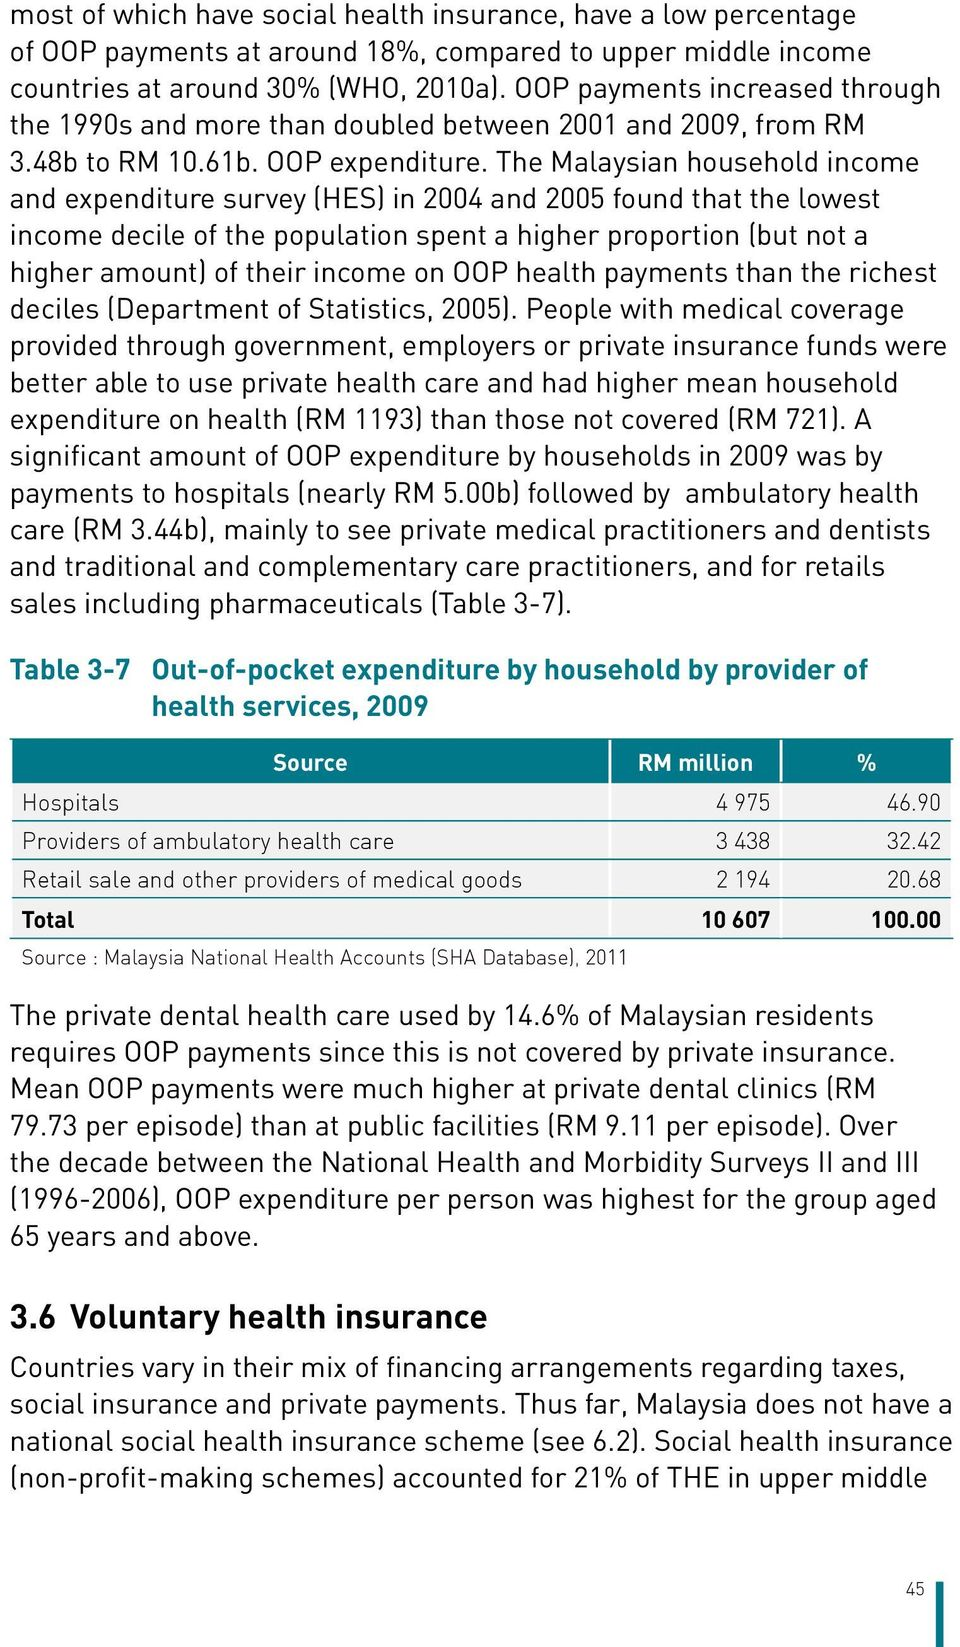 The Malaysian household income and expenditure survey (HES) in 2004 and 2005 found that the lowest income decile of the population spent a higher proportion (but not a higher amount) of their income